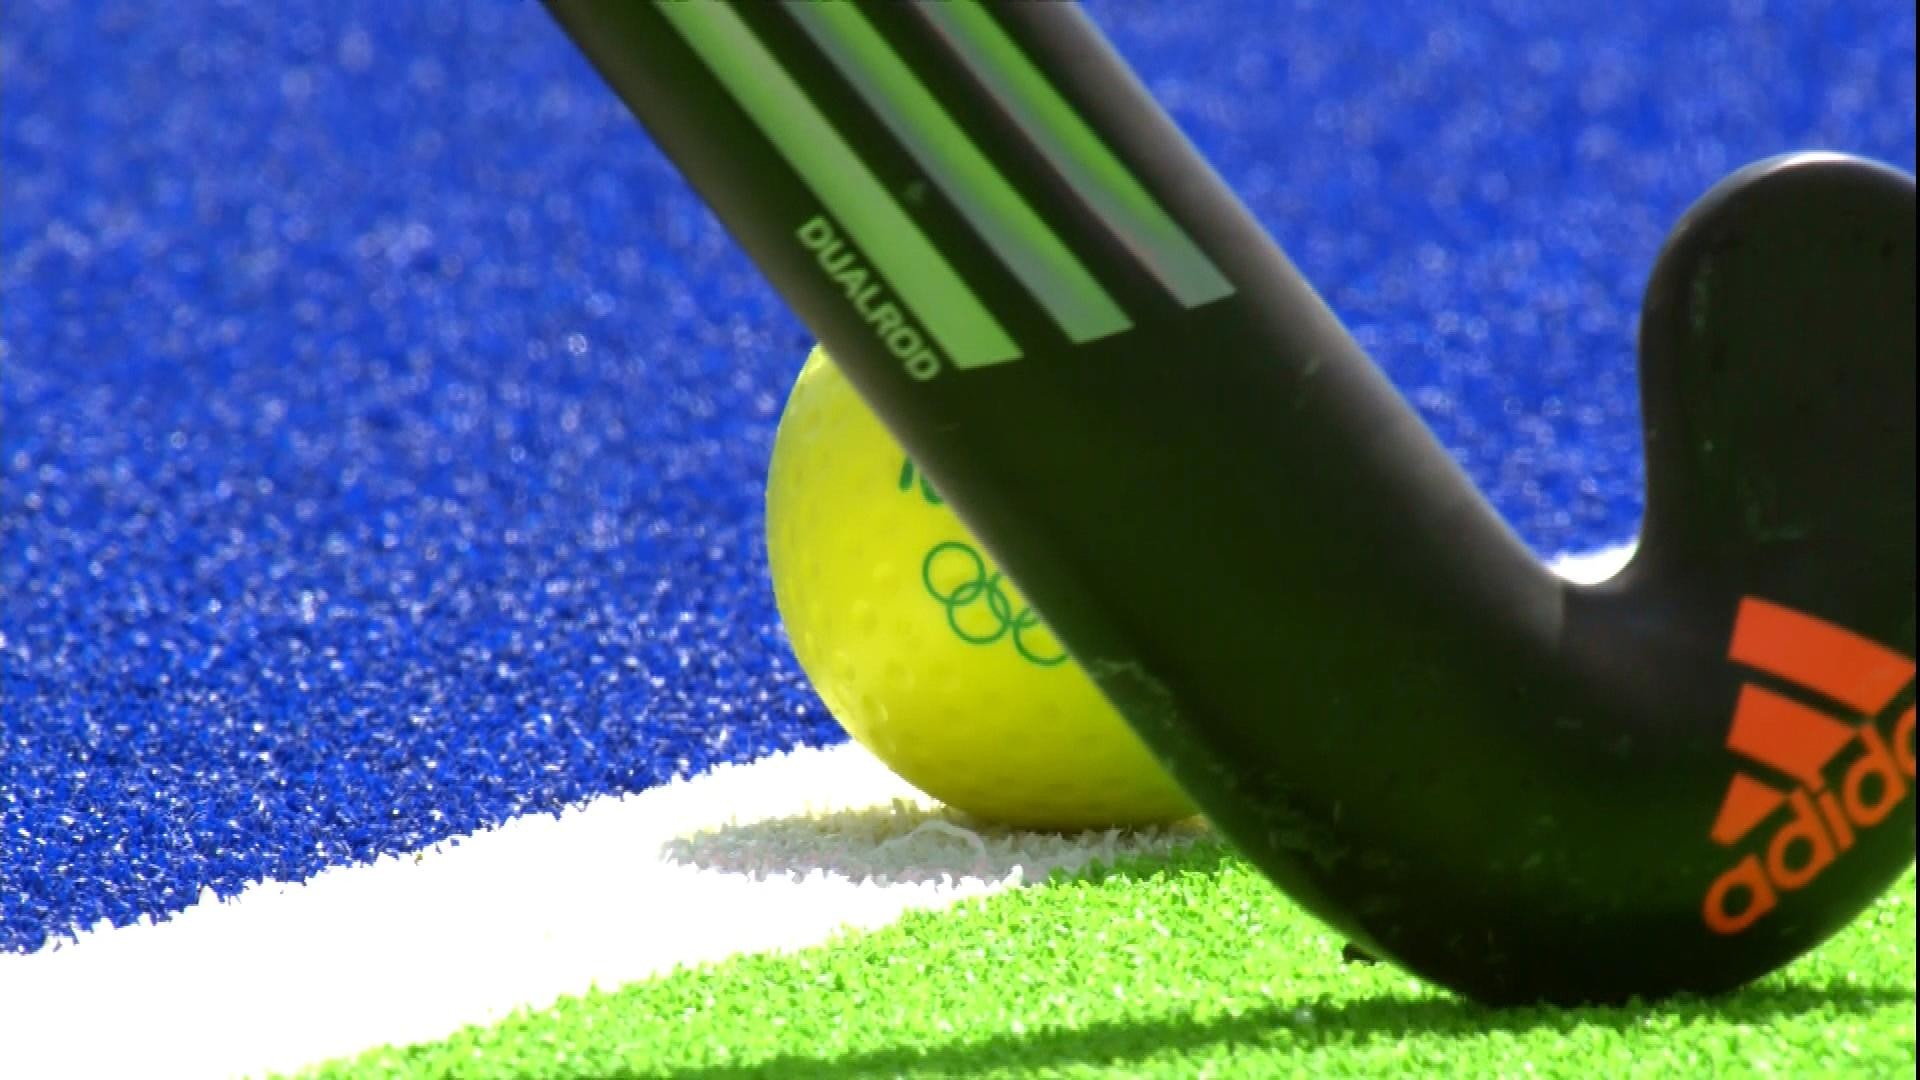 1920x1080 Great Britain Wins Gold In Shootout Ends Netherlands Olympic Field Hockey Reign